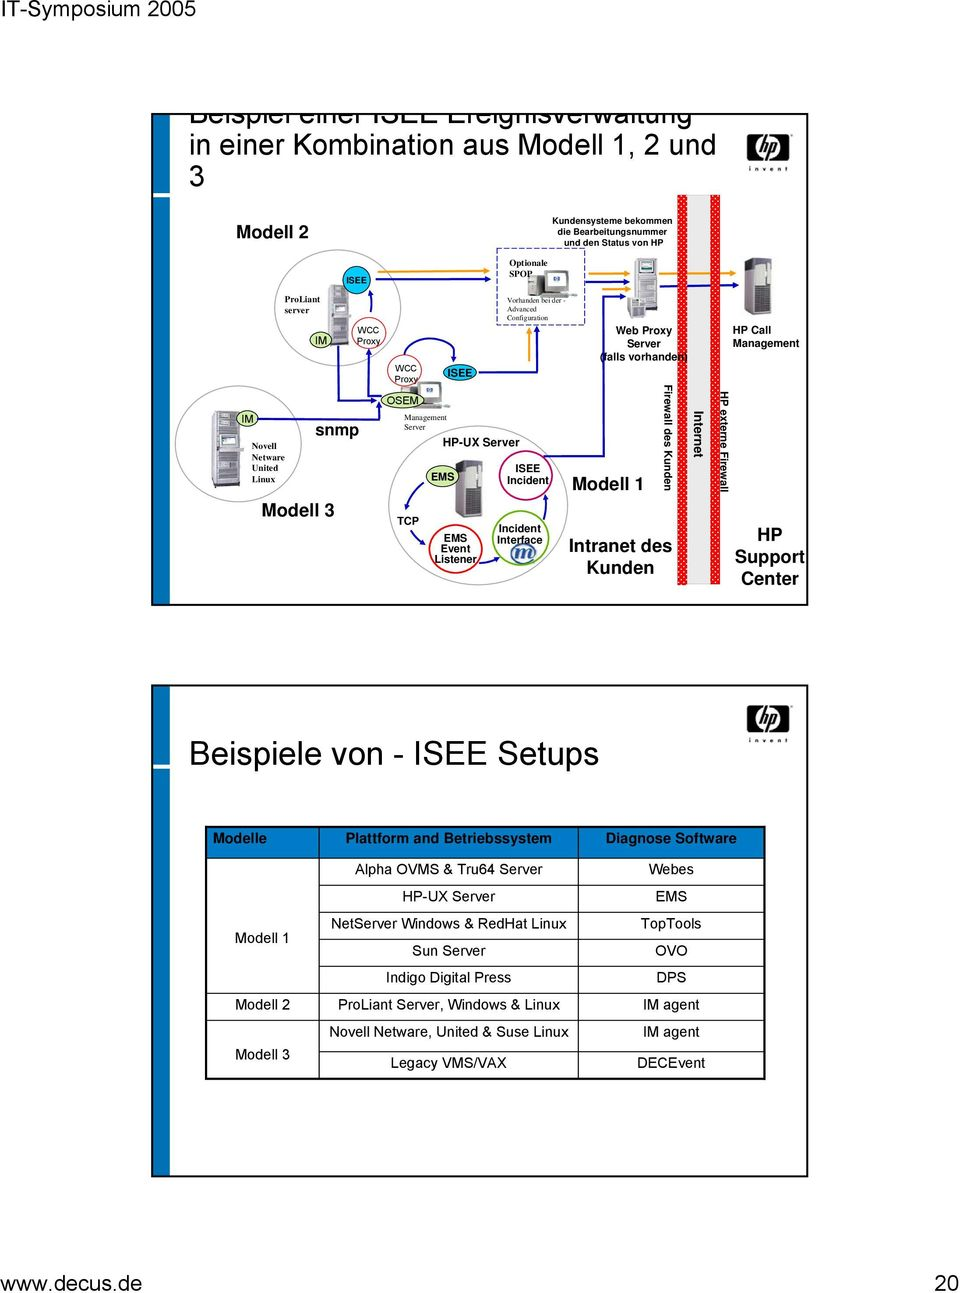 Interface Web Proxy Server (falls vorhanden) Modell 1 Firewall des Kunden Intranet des Kunden Internet HP externe Firewall HP Call Management HP Support Center Beispiele von - ISEE Setups Modelle